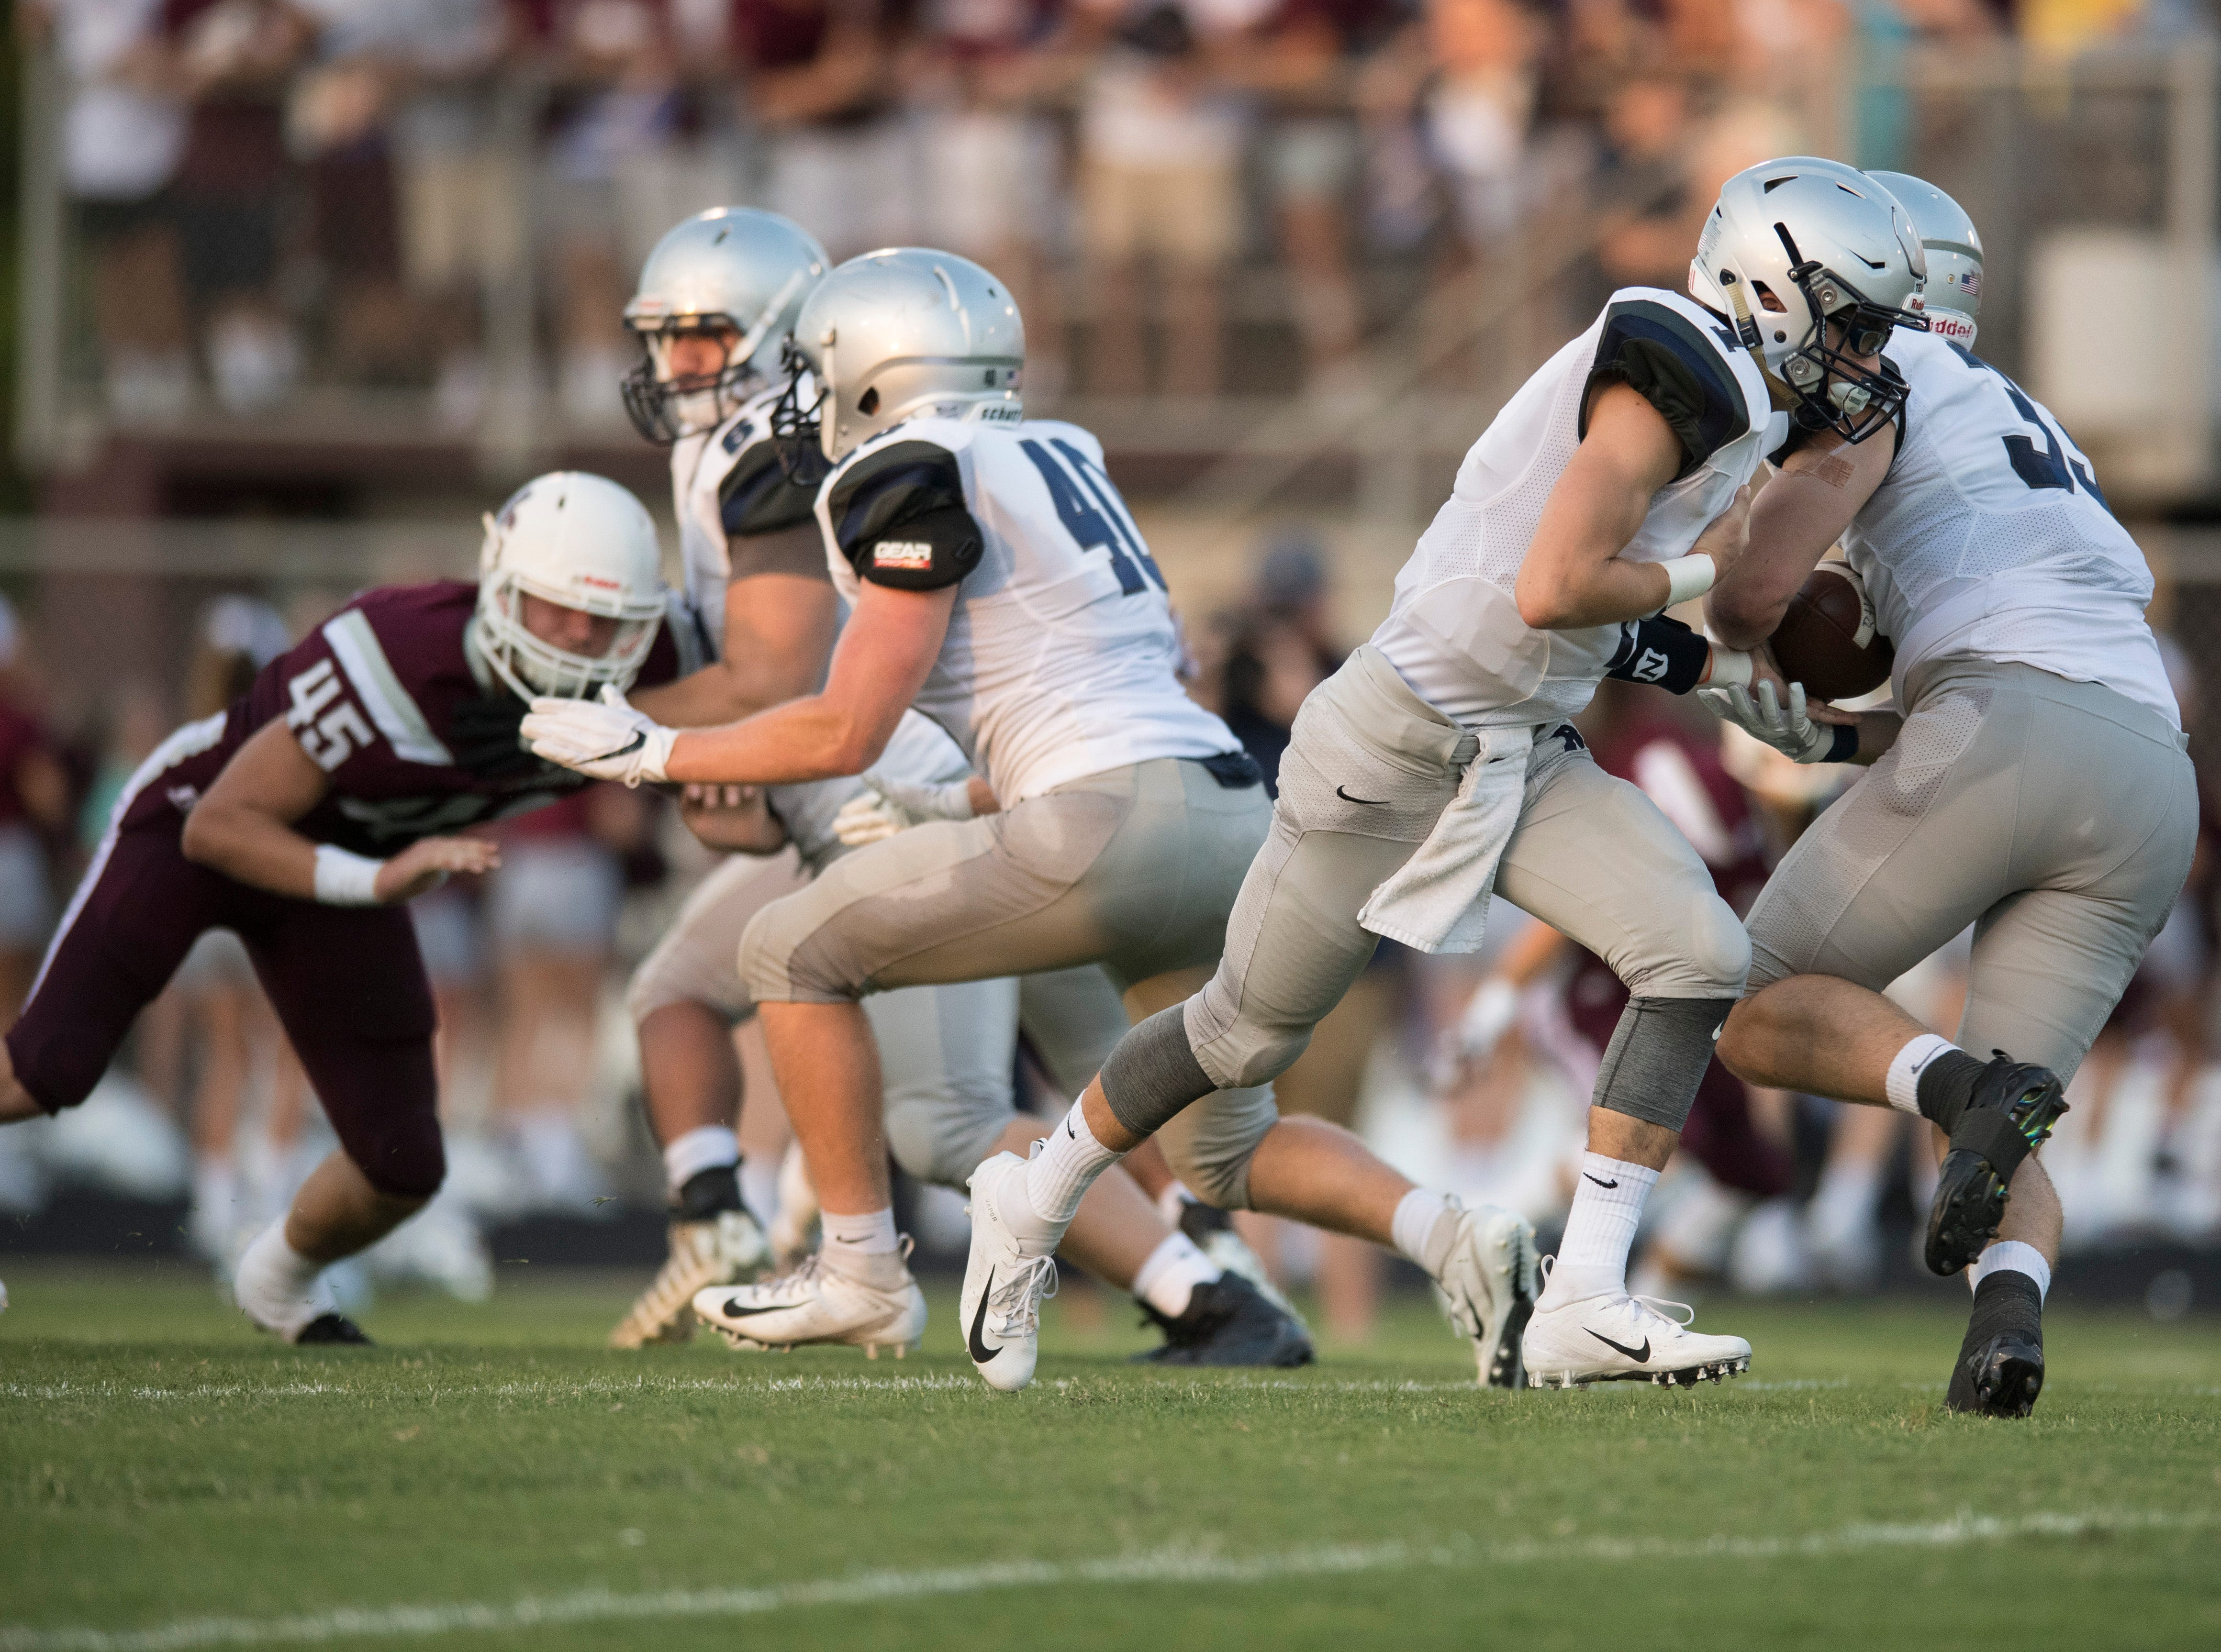 Reitz's Quarterback Eli Wiethop (1)  hands the ball to Reitz's Carter Schnarr (33) during the first quarter of the Reitz vs Henderson County game at Colonel Stadium Friday, August 17, 2018. The Panthers defeated the Colonels 41-35 in the season opening game.